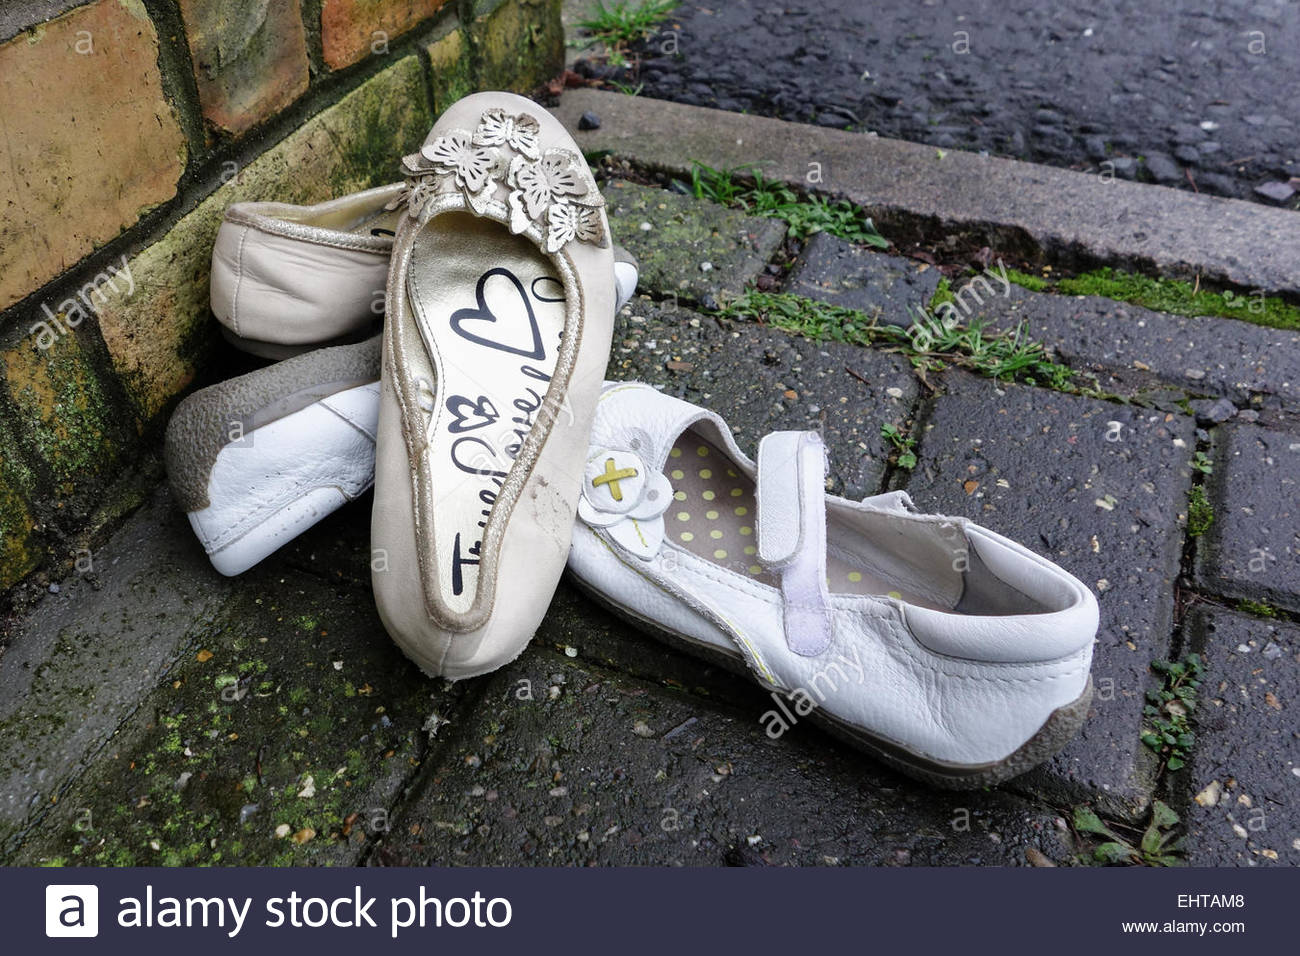 Two pairs of discarded womens shoes on a wet pavement - Stock Image